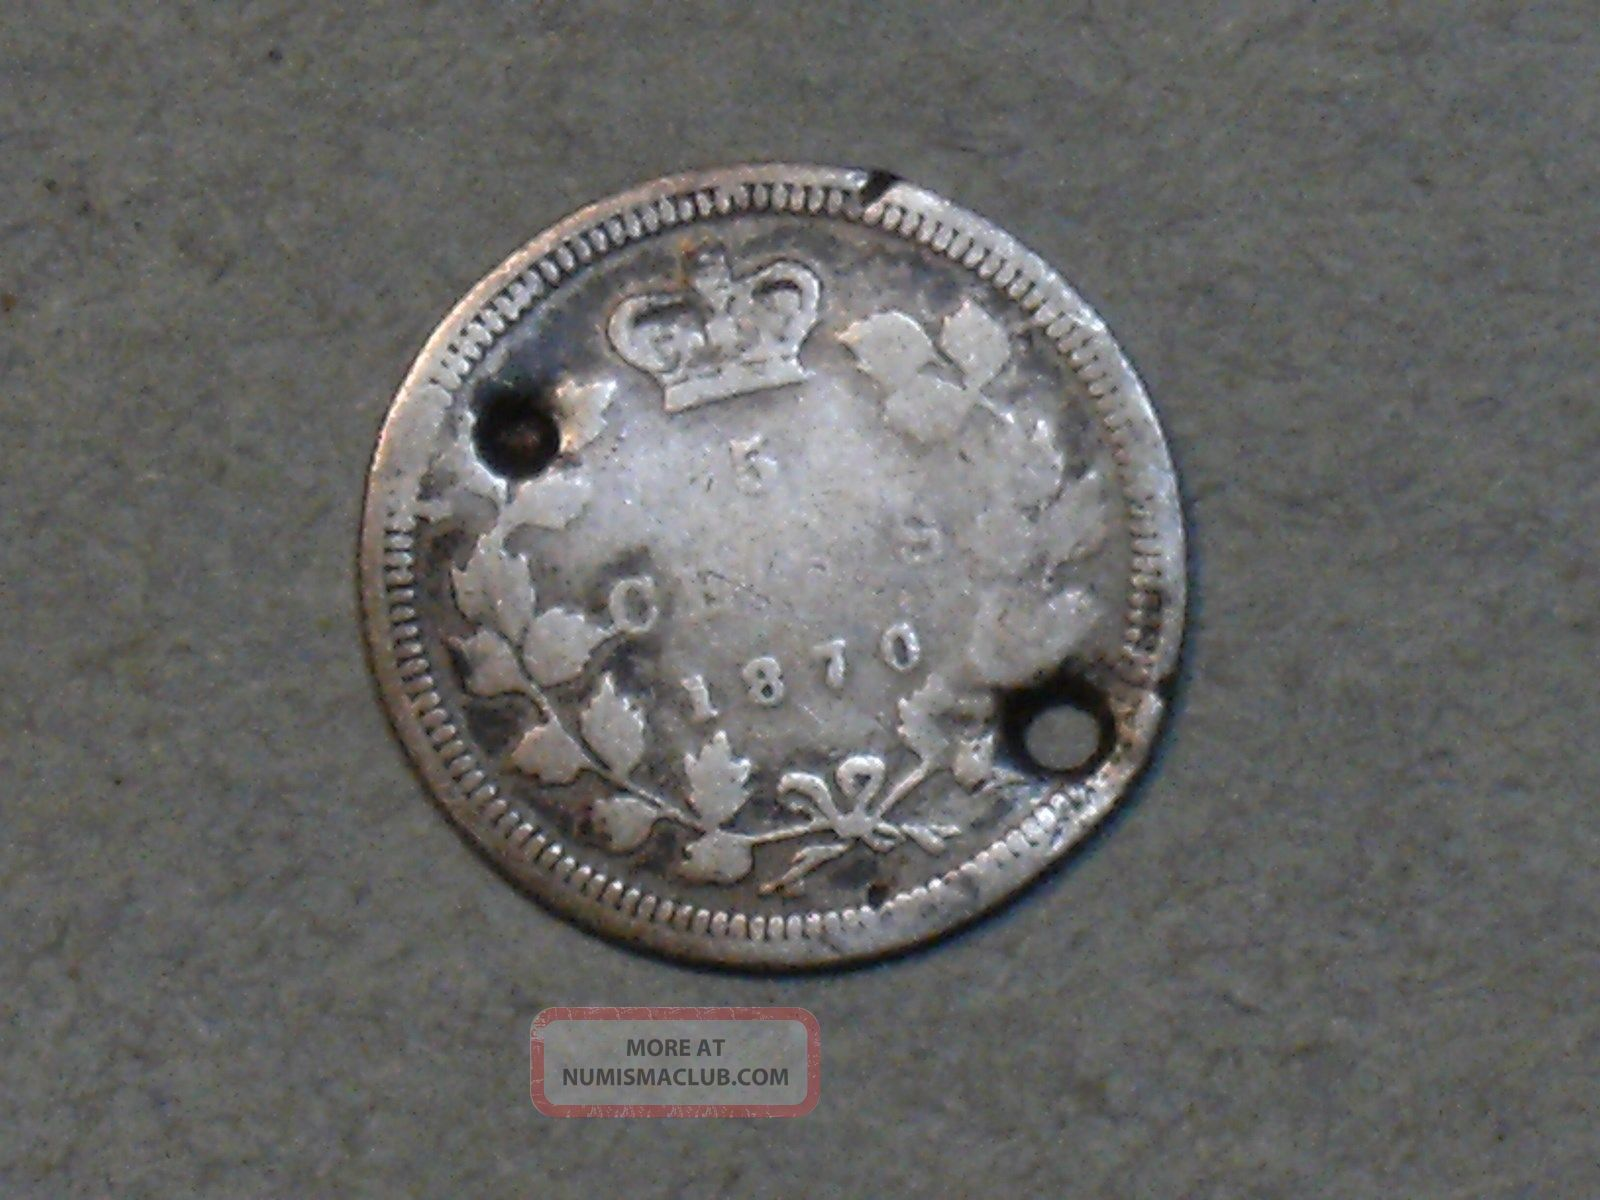 1870 Canadian Five Cent Silver Coin 3850a